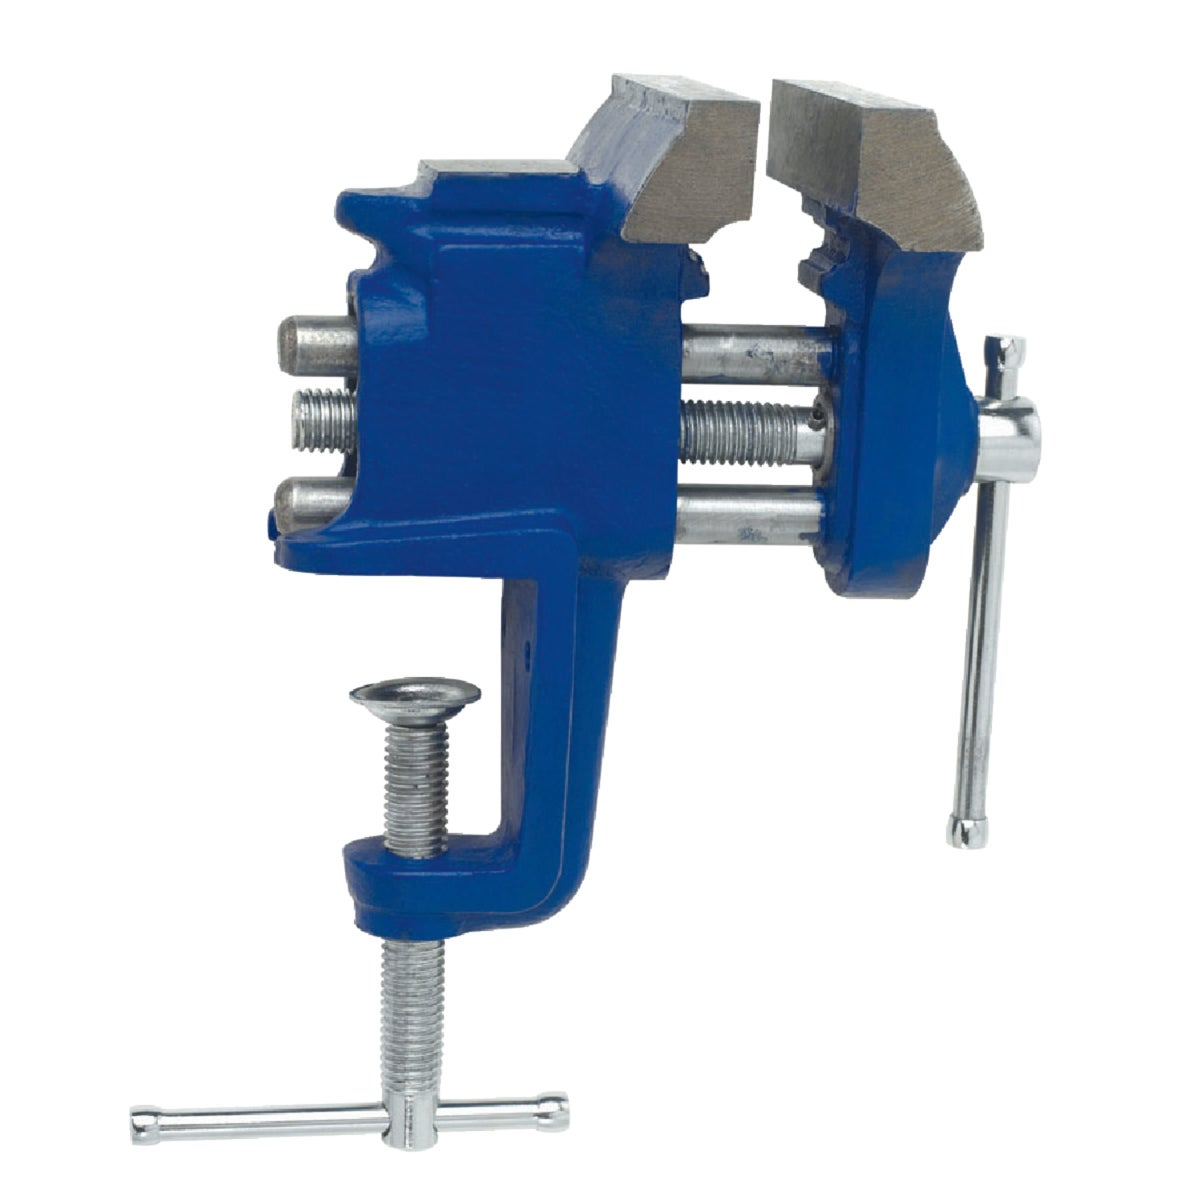 "3"" CLAMP-ON VISE - 226303ZR by Irwin Industr Tool"